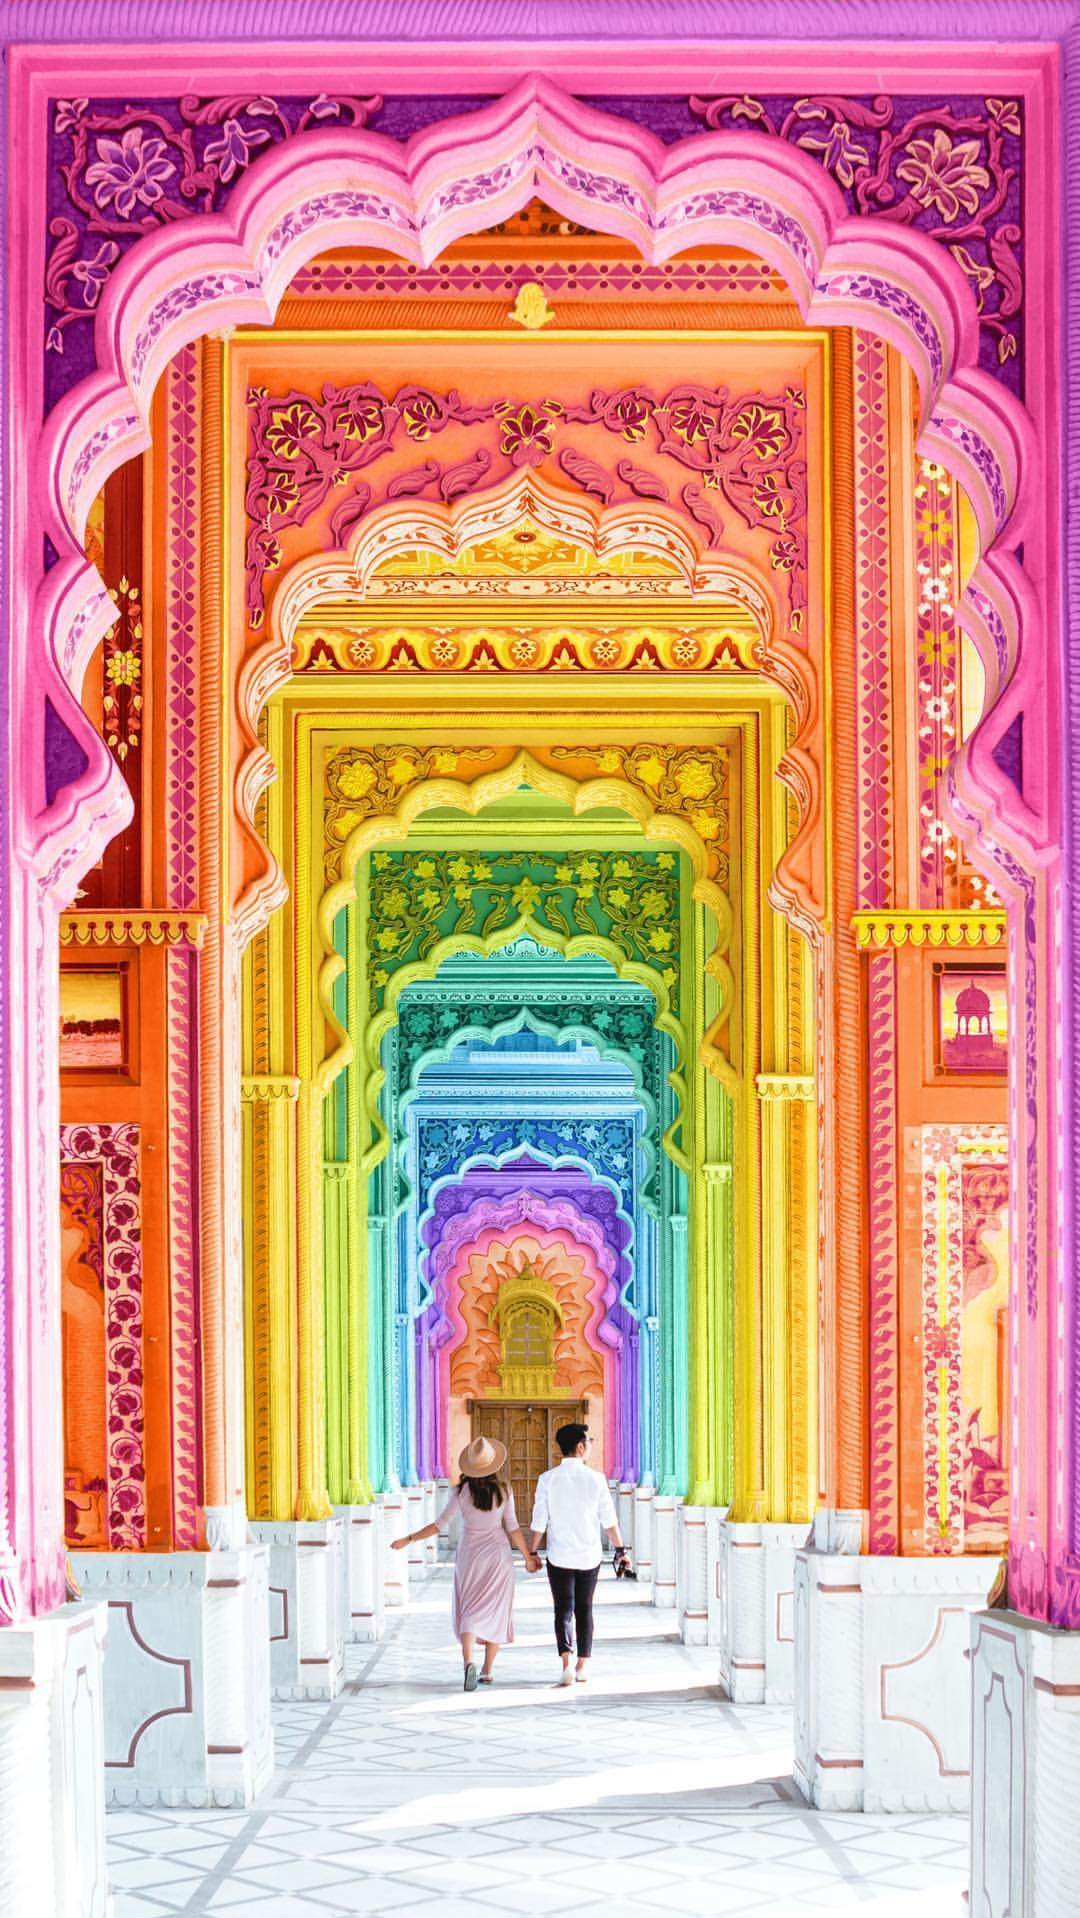 Golden Girls Home Wallpaper Colorful Historical Place Rajasthan Iphone Wallpaper